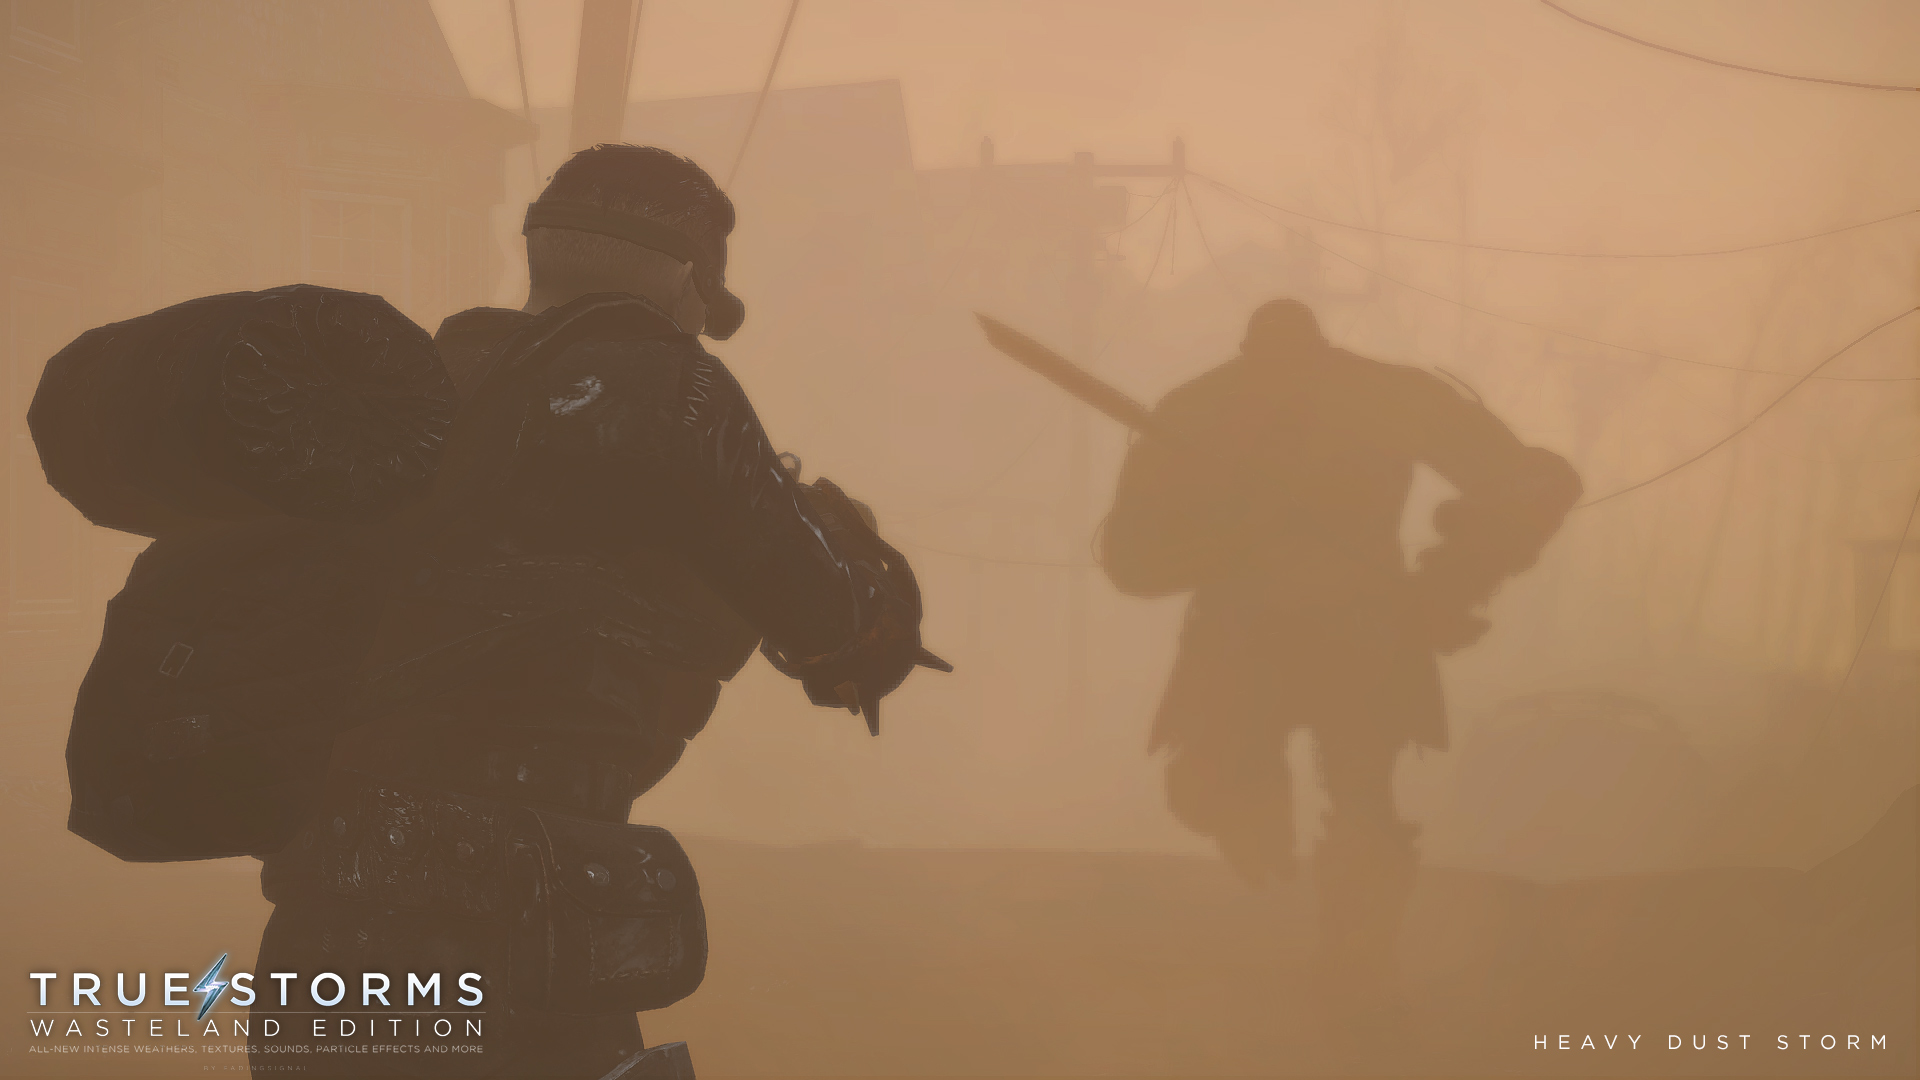 The Best Fallout 4 Xbox One Graphics Mods to Bring the Wasteland to Life